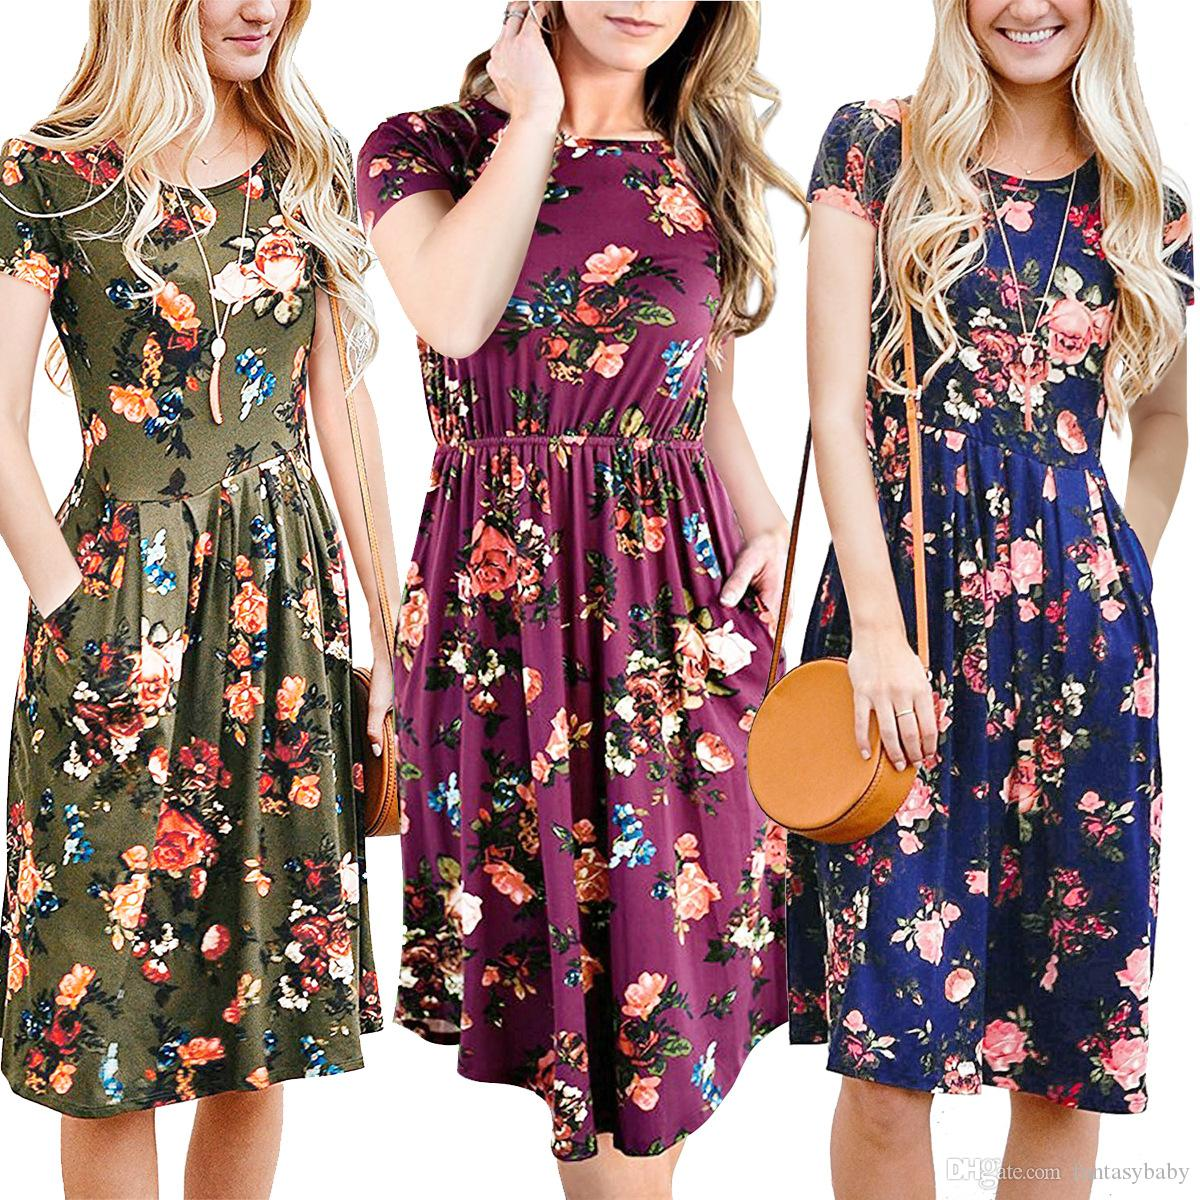 2018 New Fashion Clothing Womens Summer Casual Dress With Floral Short  Sleeve Midi Dress A Line Flare Vintage Dress FU040 Plus Size Cocktail  Dresses Long ... 58151e01c